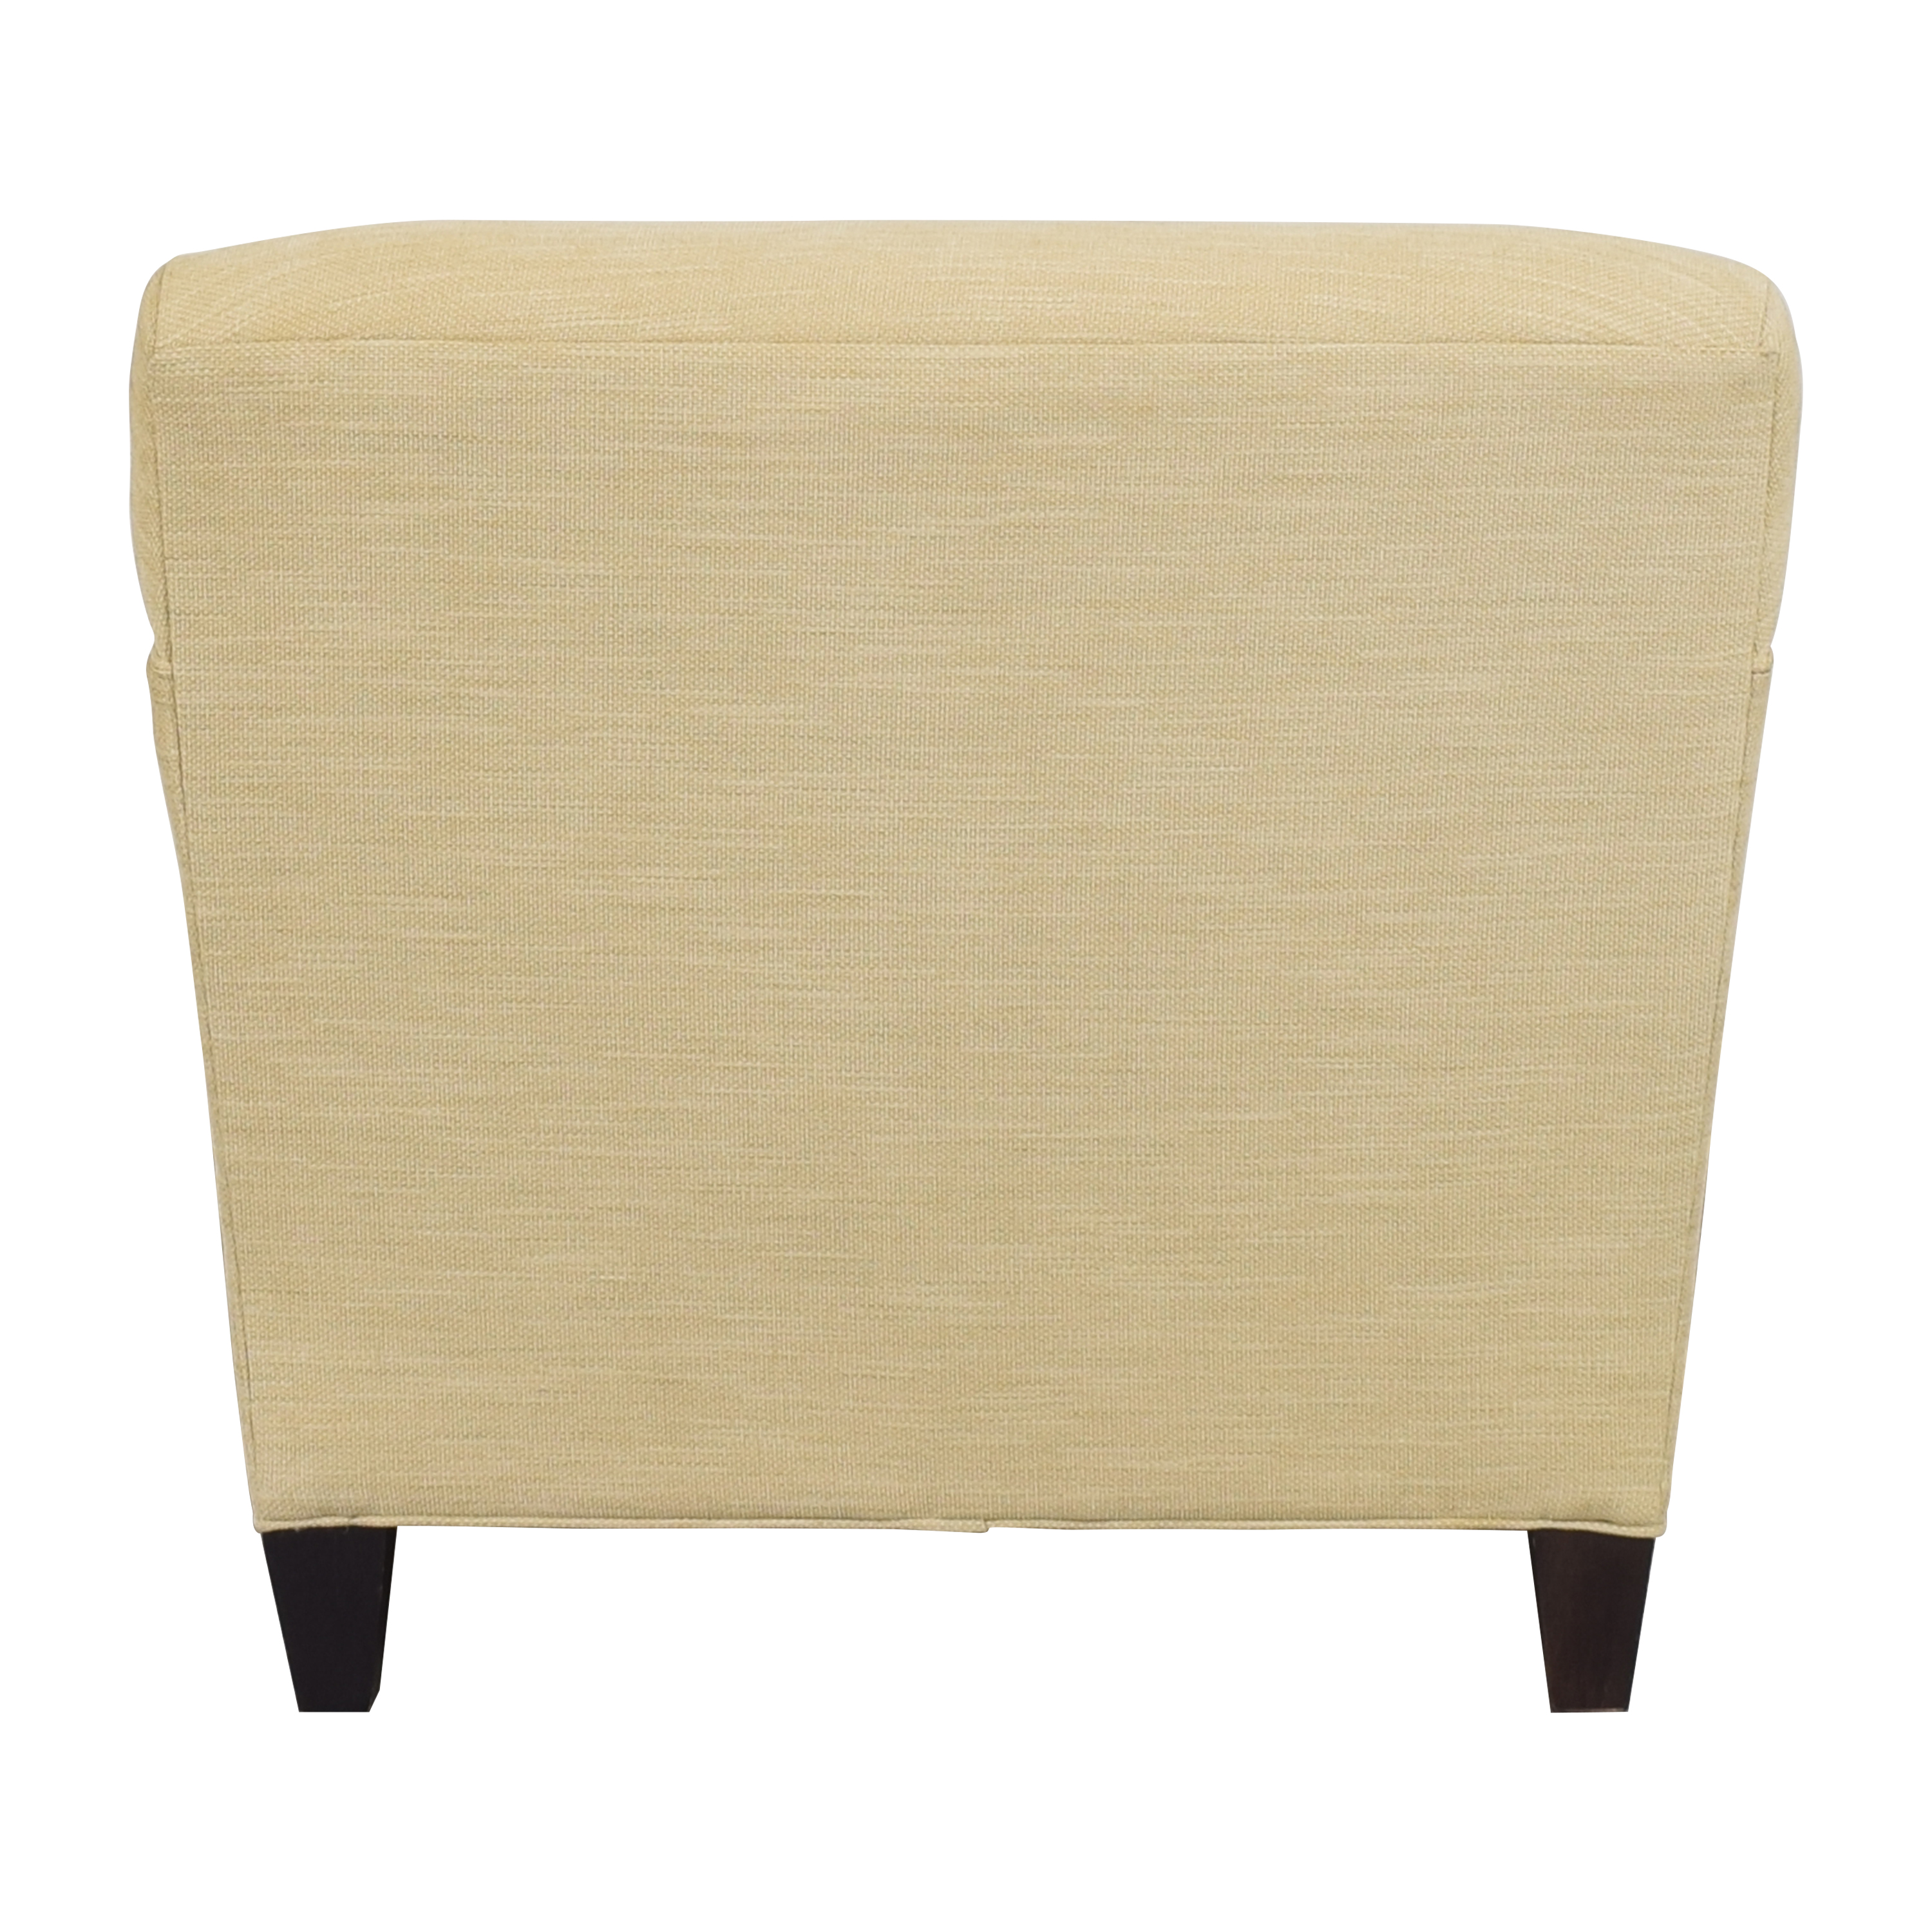 Crate & Barrel Crate & Barrel Hennessy Chair Accent Chairs